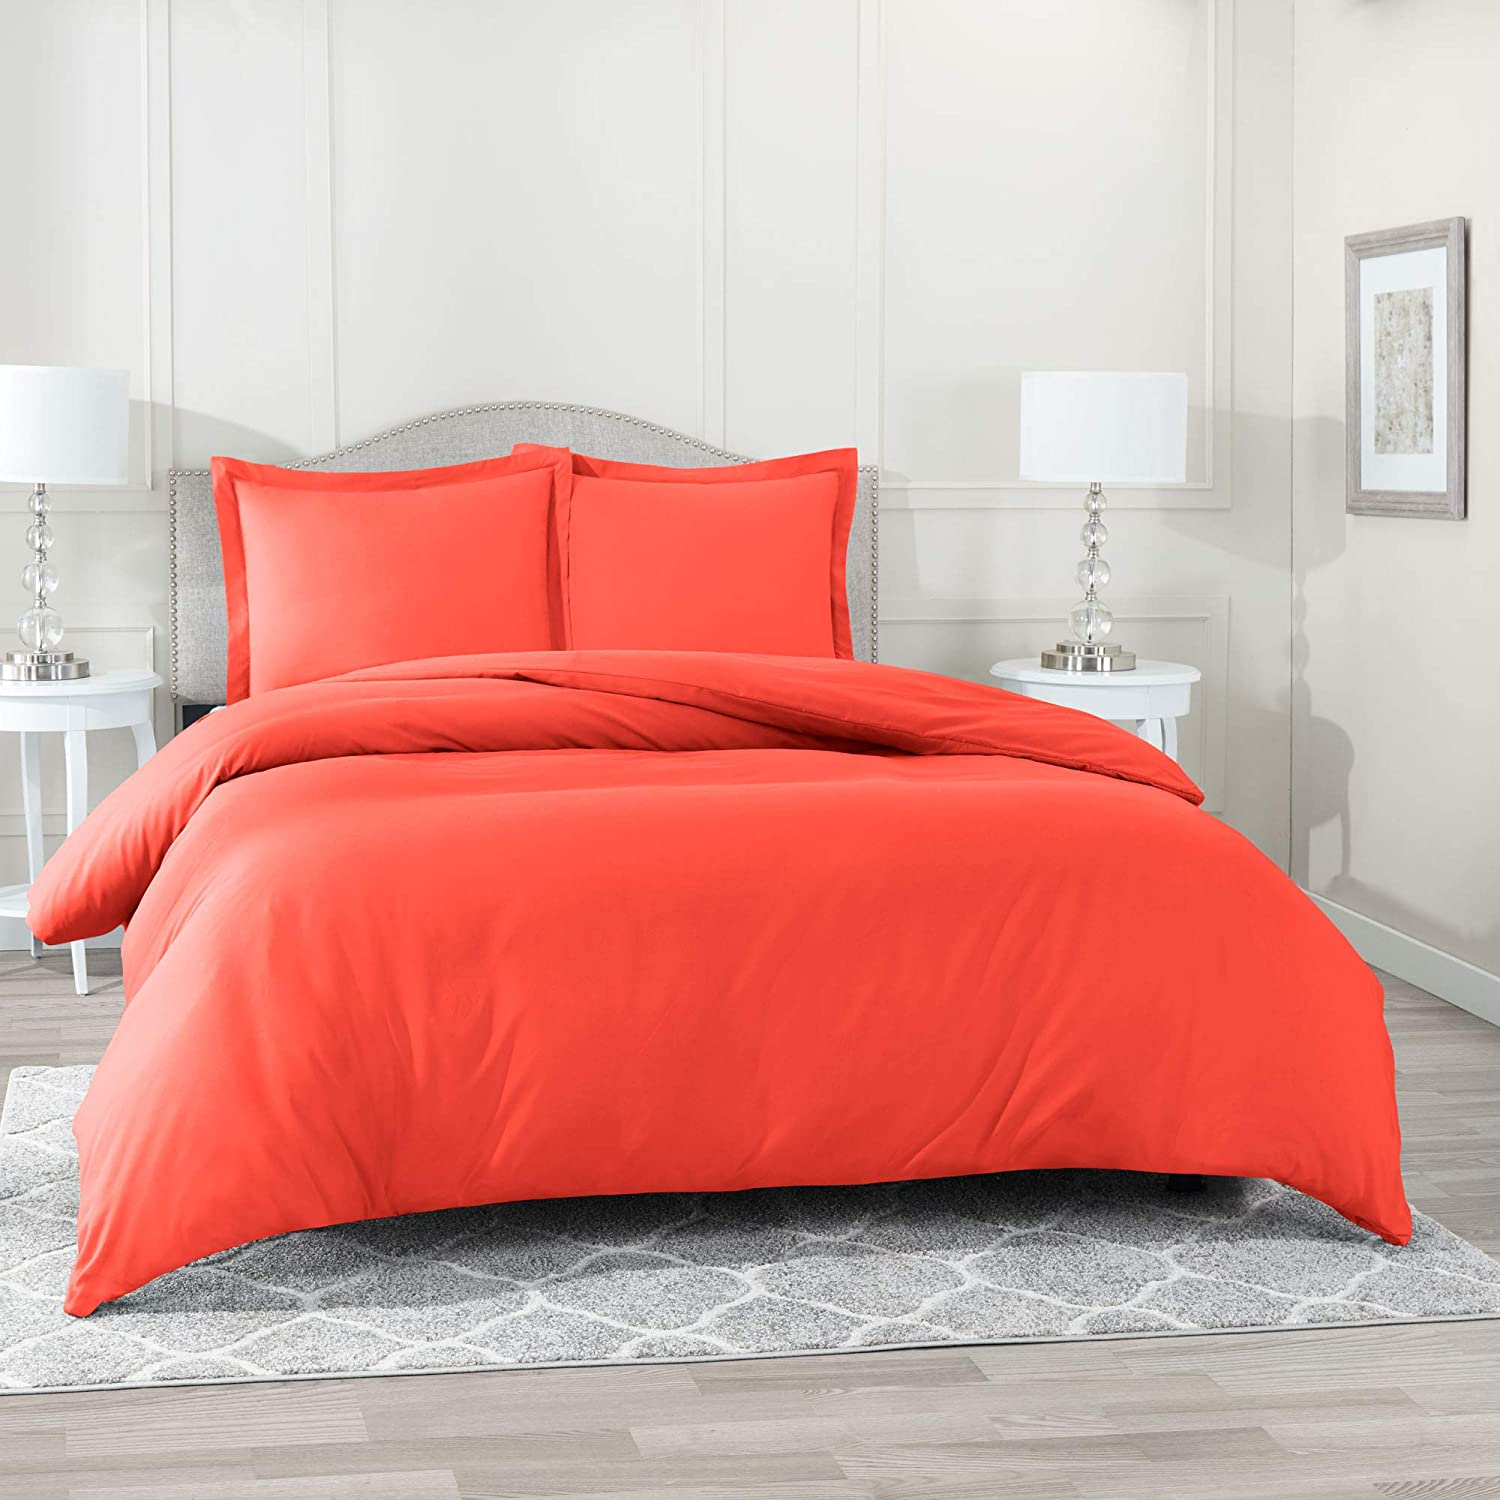 Nestl Bedding Duvet Cover 3 Piece Set – Ultra Soft Double Brushed Microfiber Hotel Collection – Comforter Cover with Button Closure and 2 Pillow Shams, Orange - Full (Double) 80